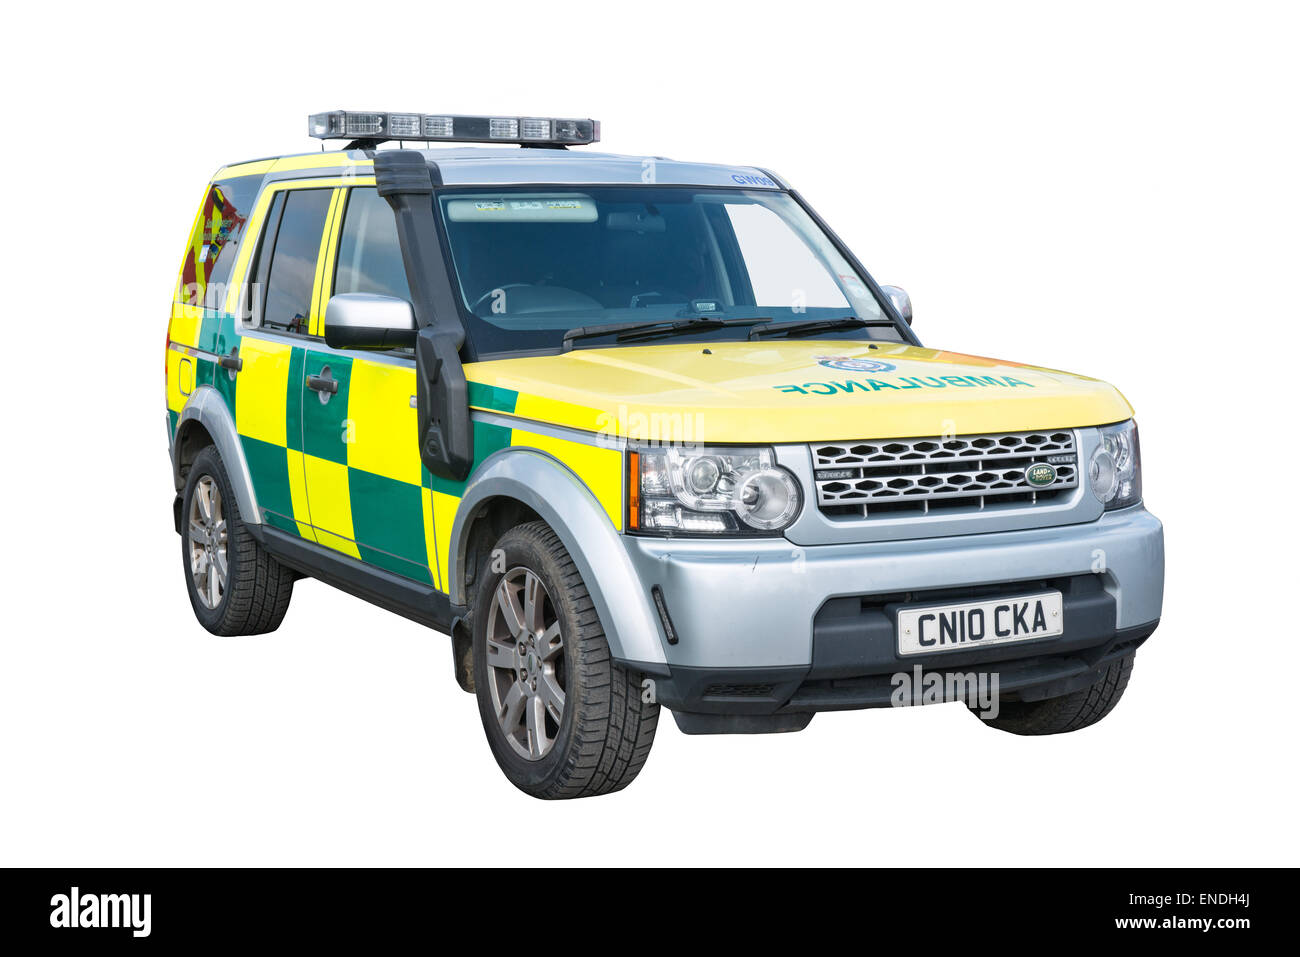 A cut out of a Wiltshire NHS trust paramedic Landrover ambulance - Stock Image